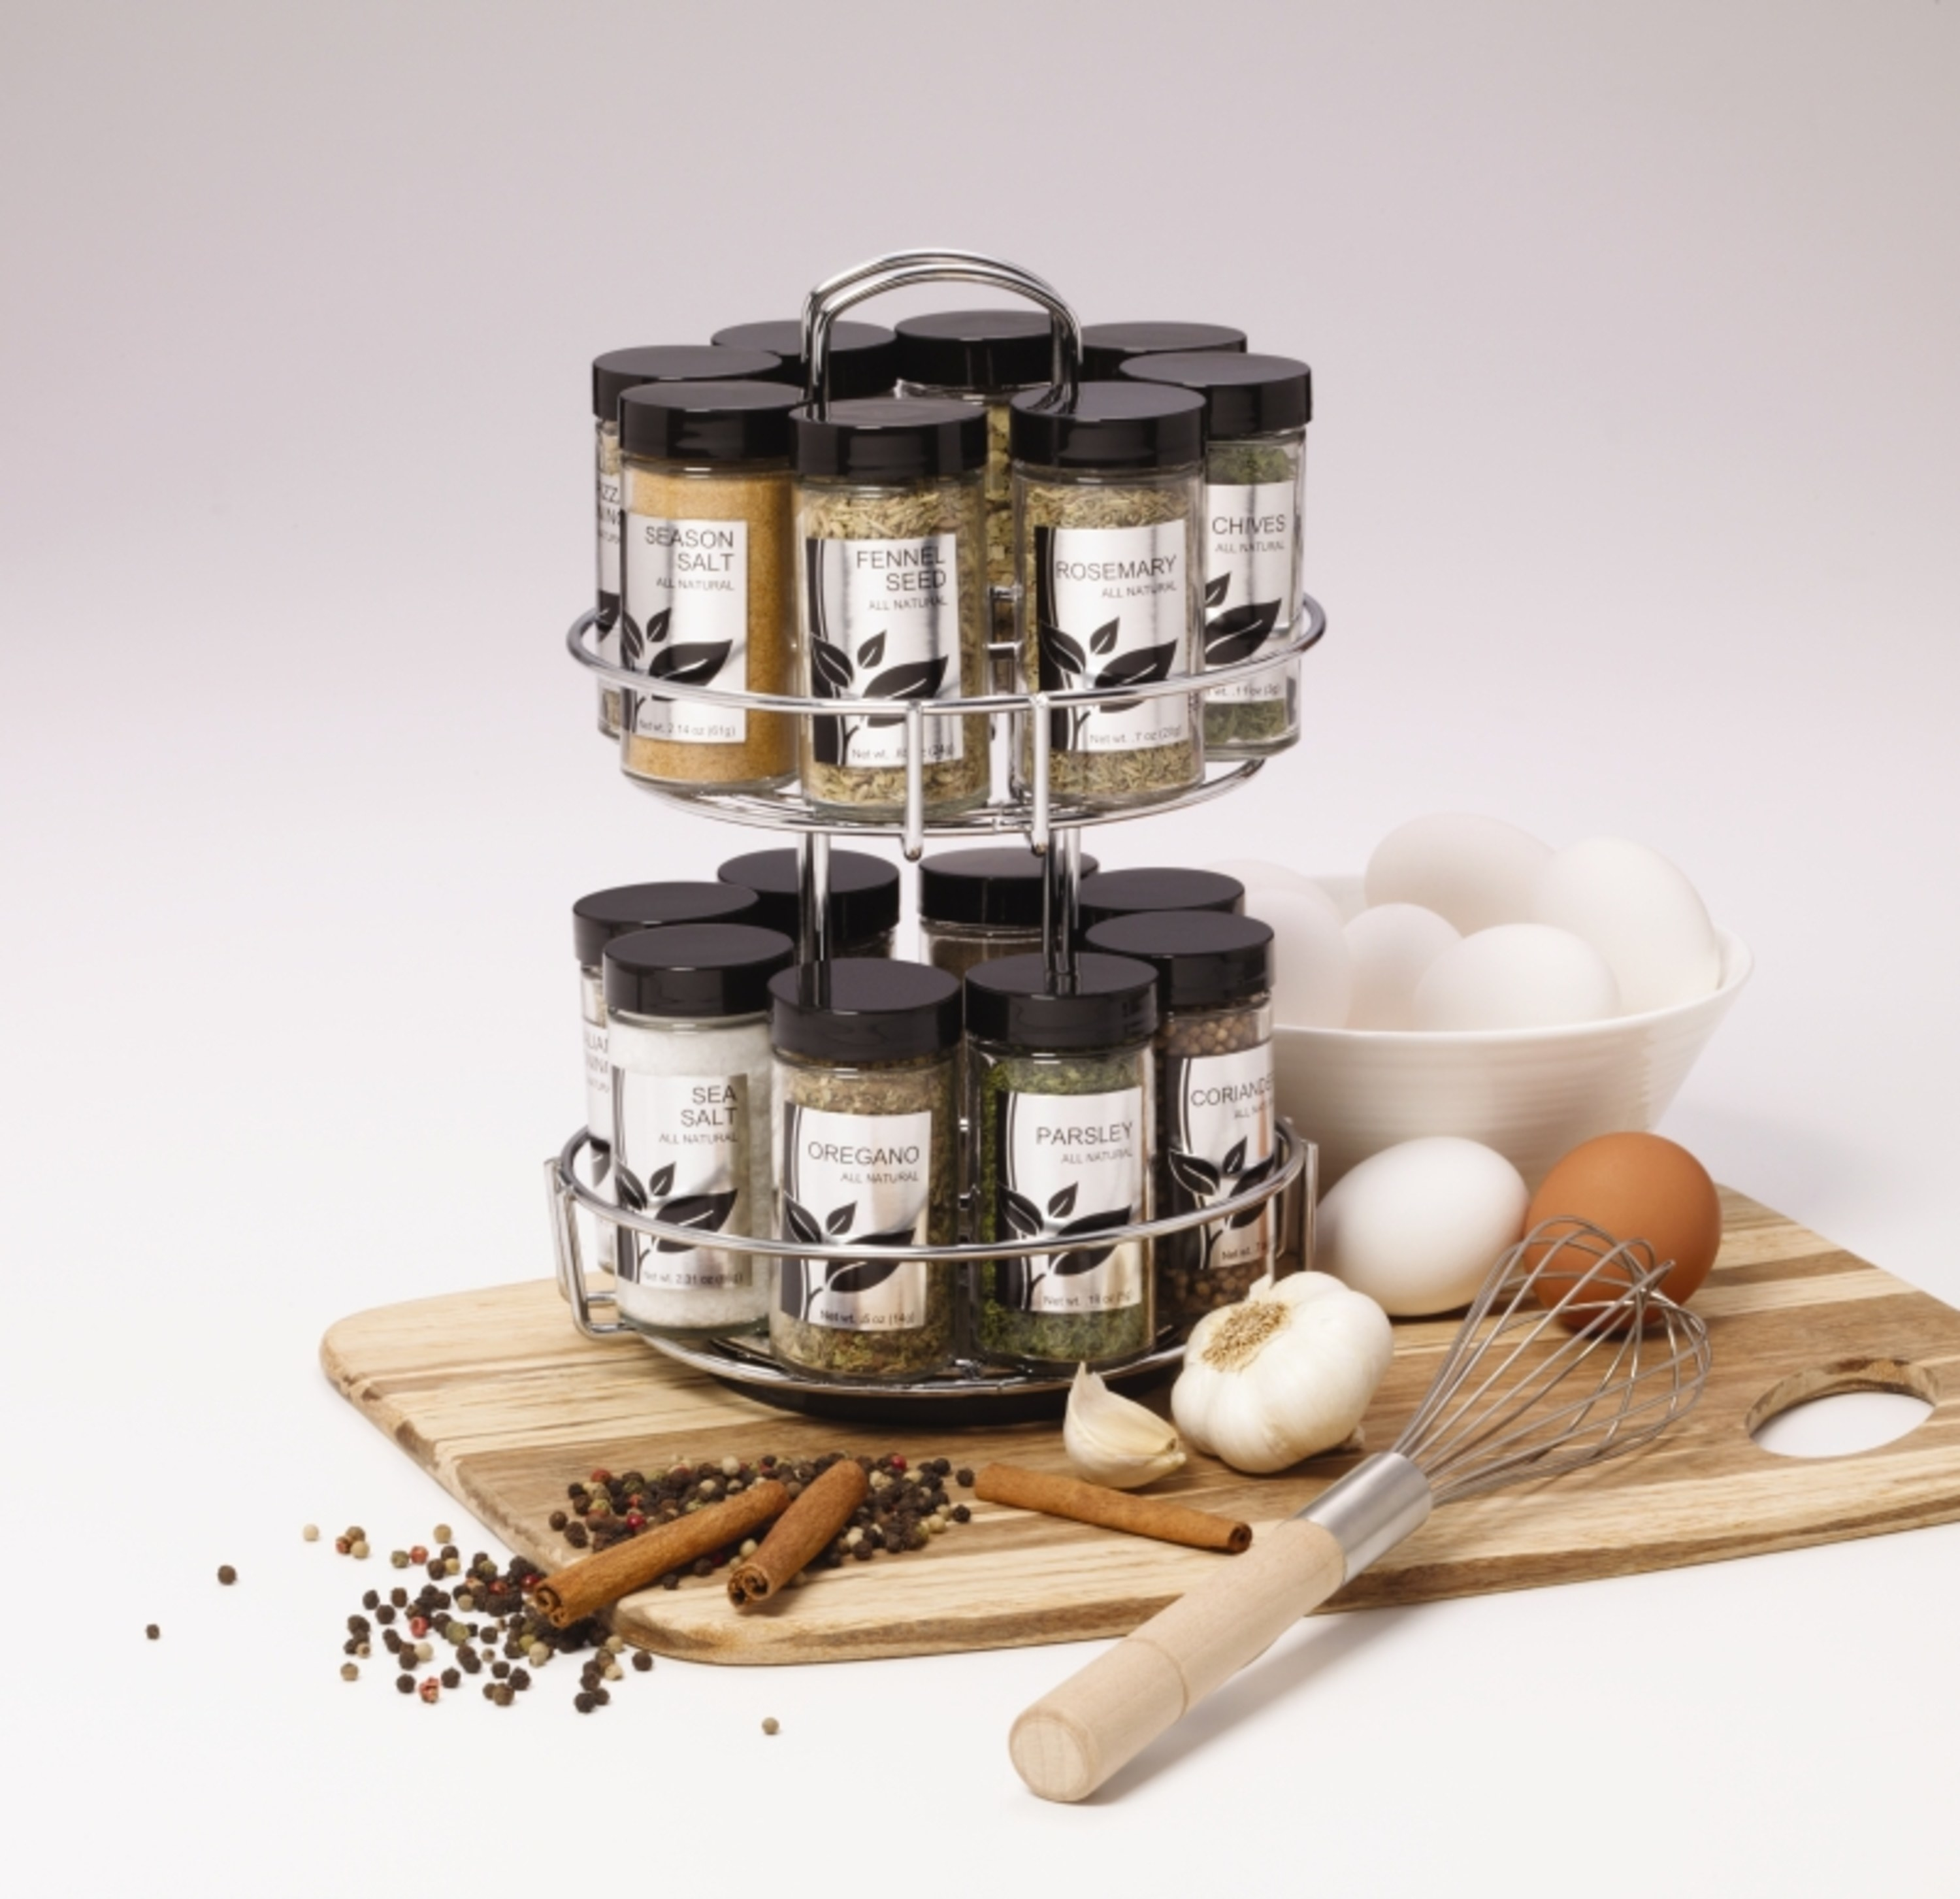 revolving spice rack with 16 spice jars on a cutting board